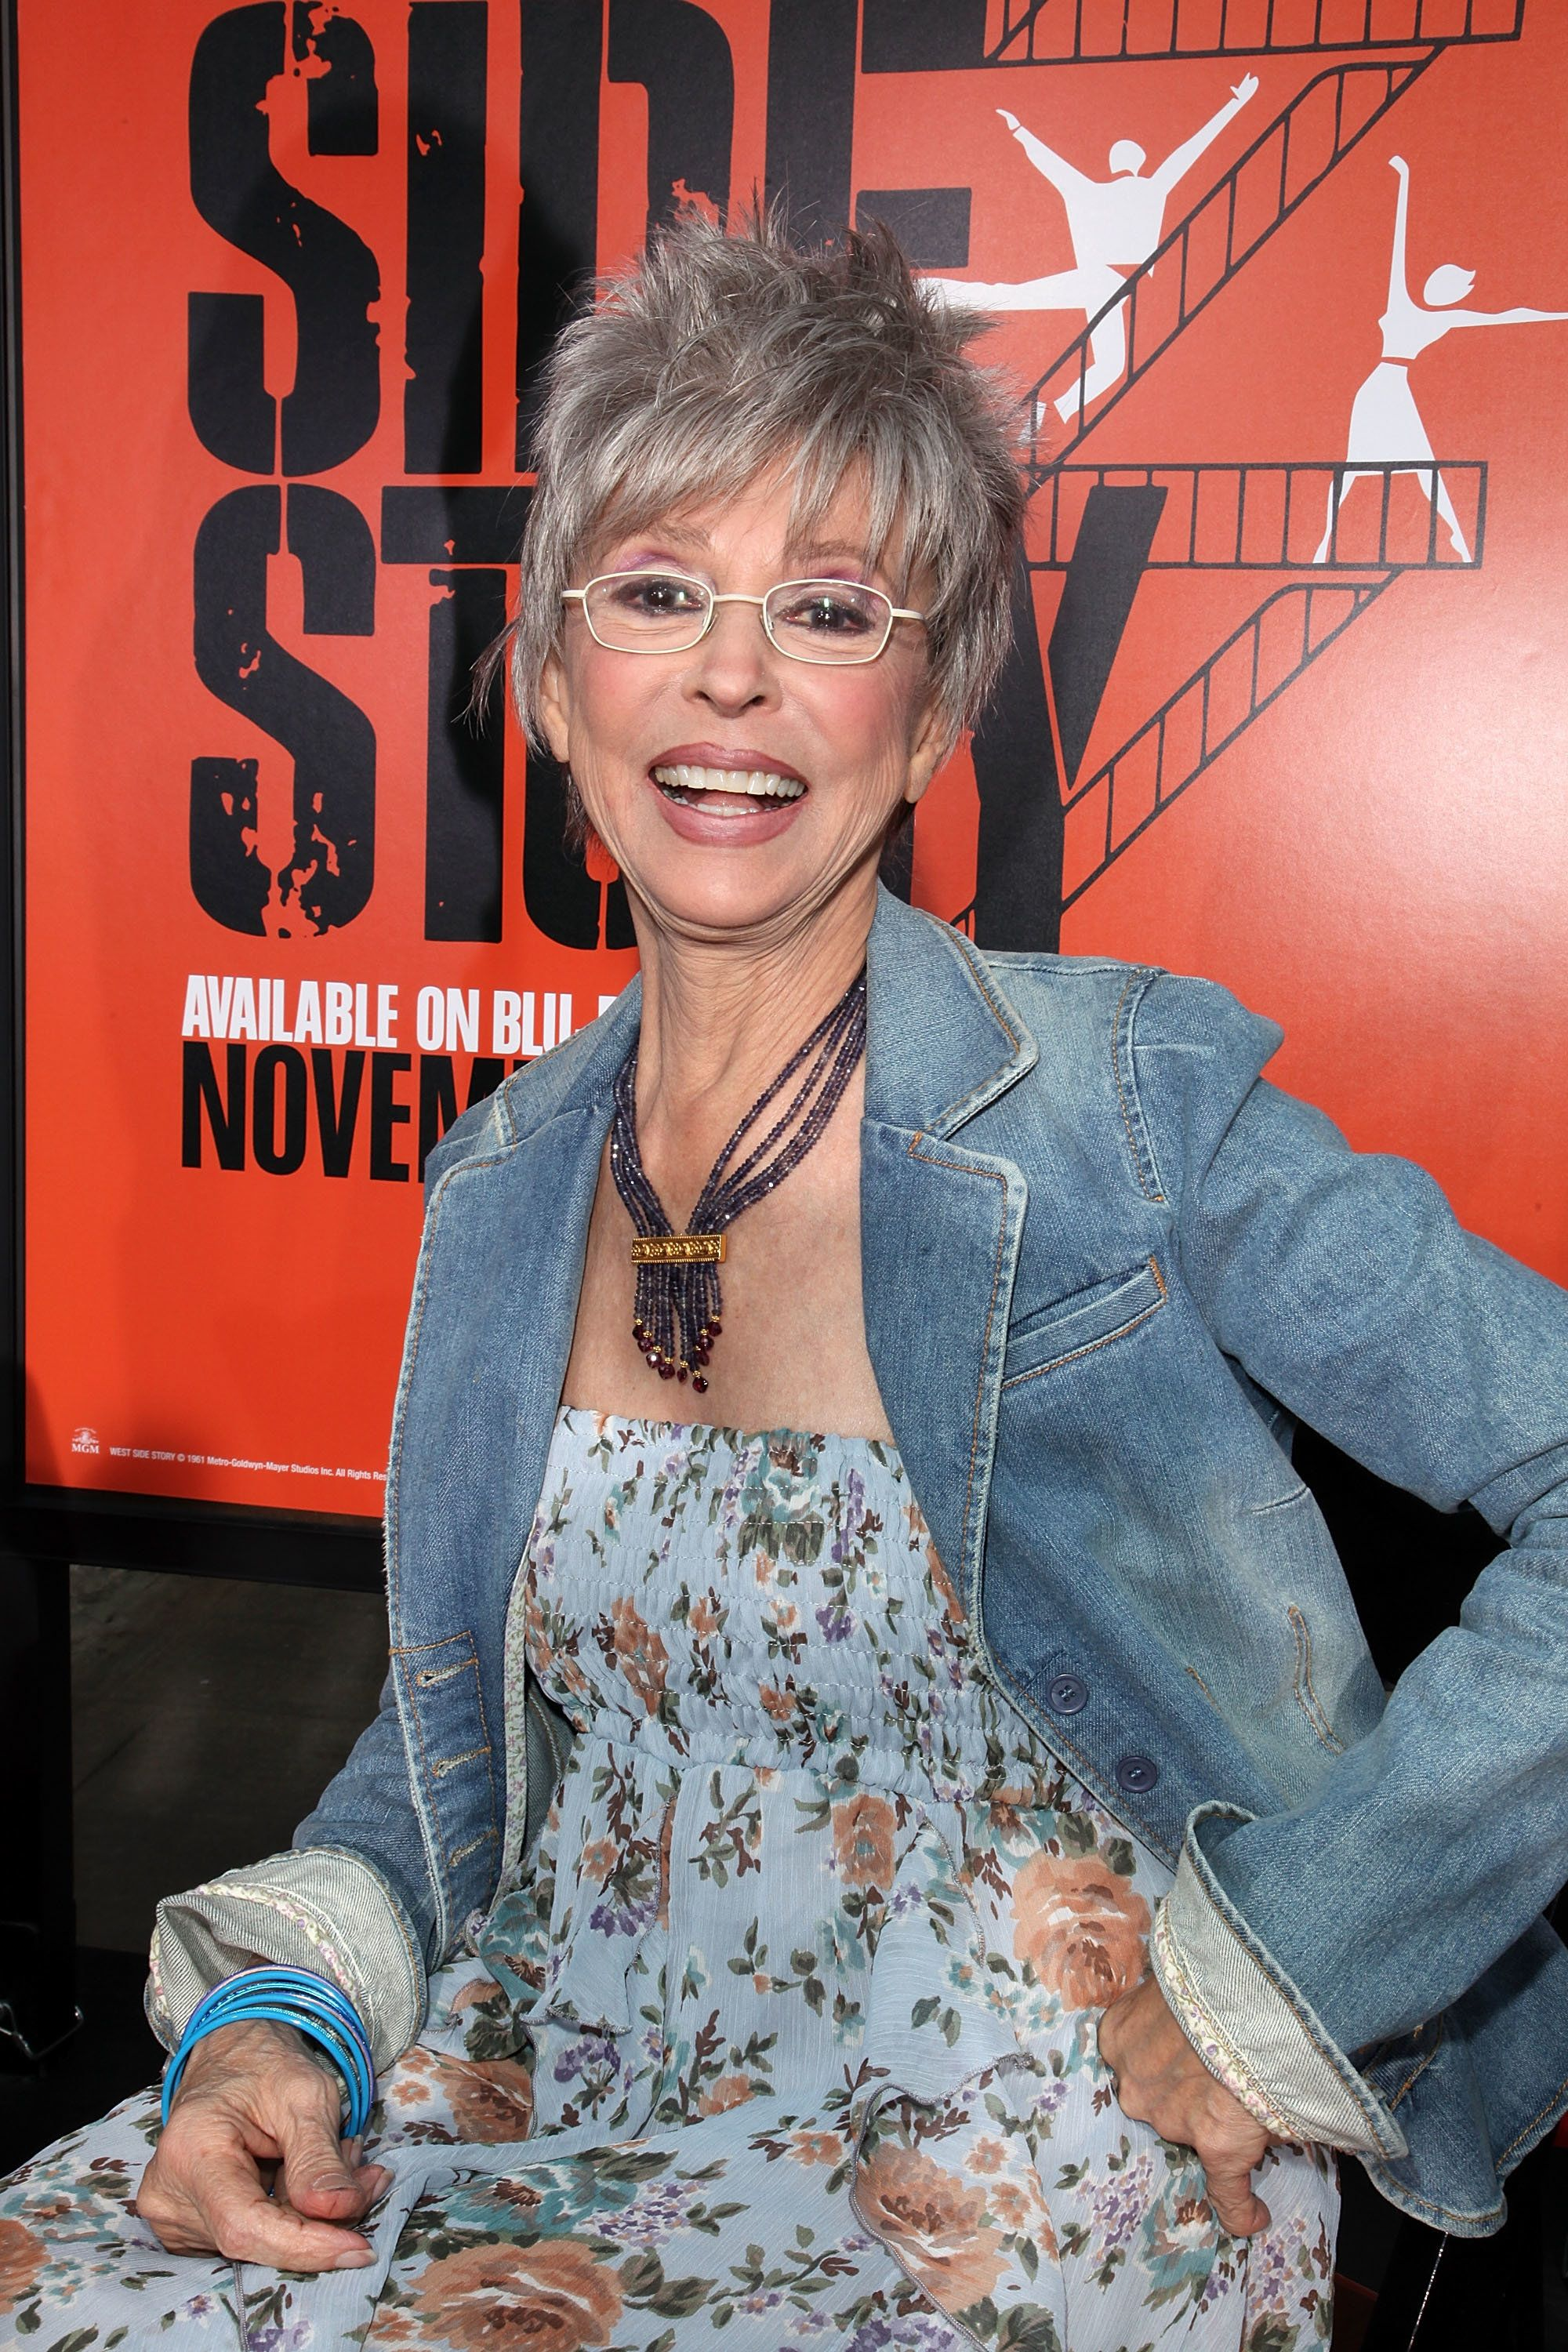 Rita Moreno Will Return To 'West Side Story' For New Role In